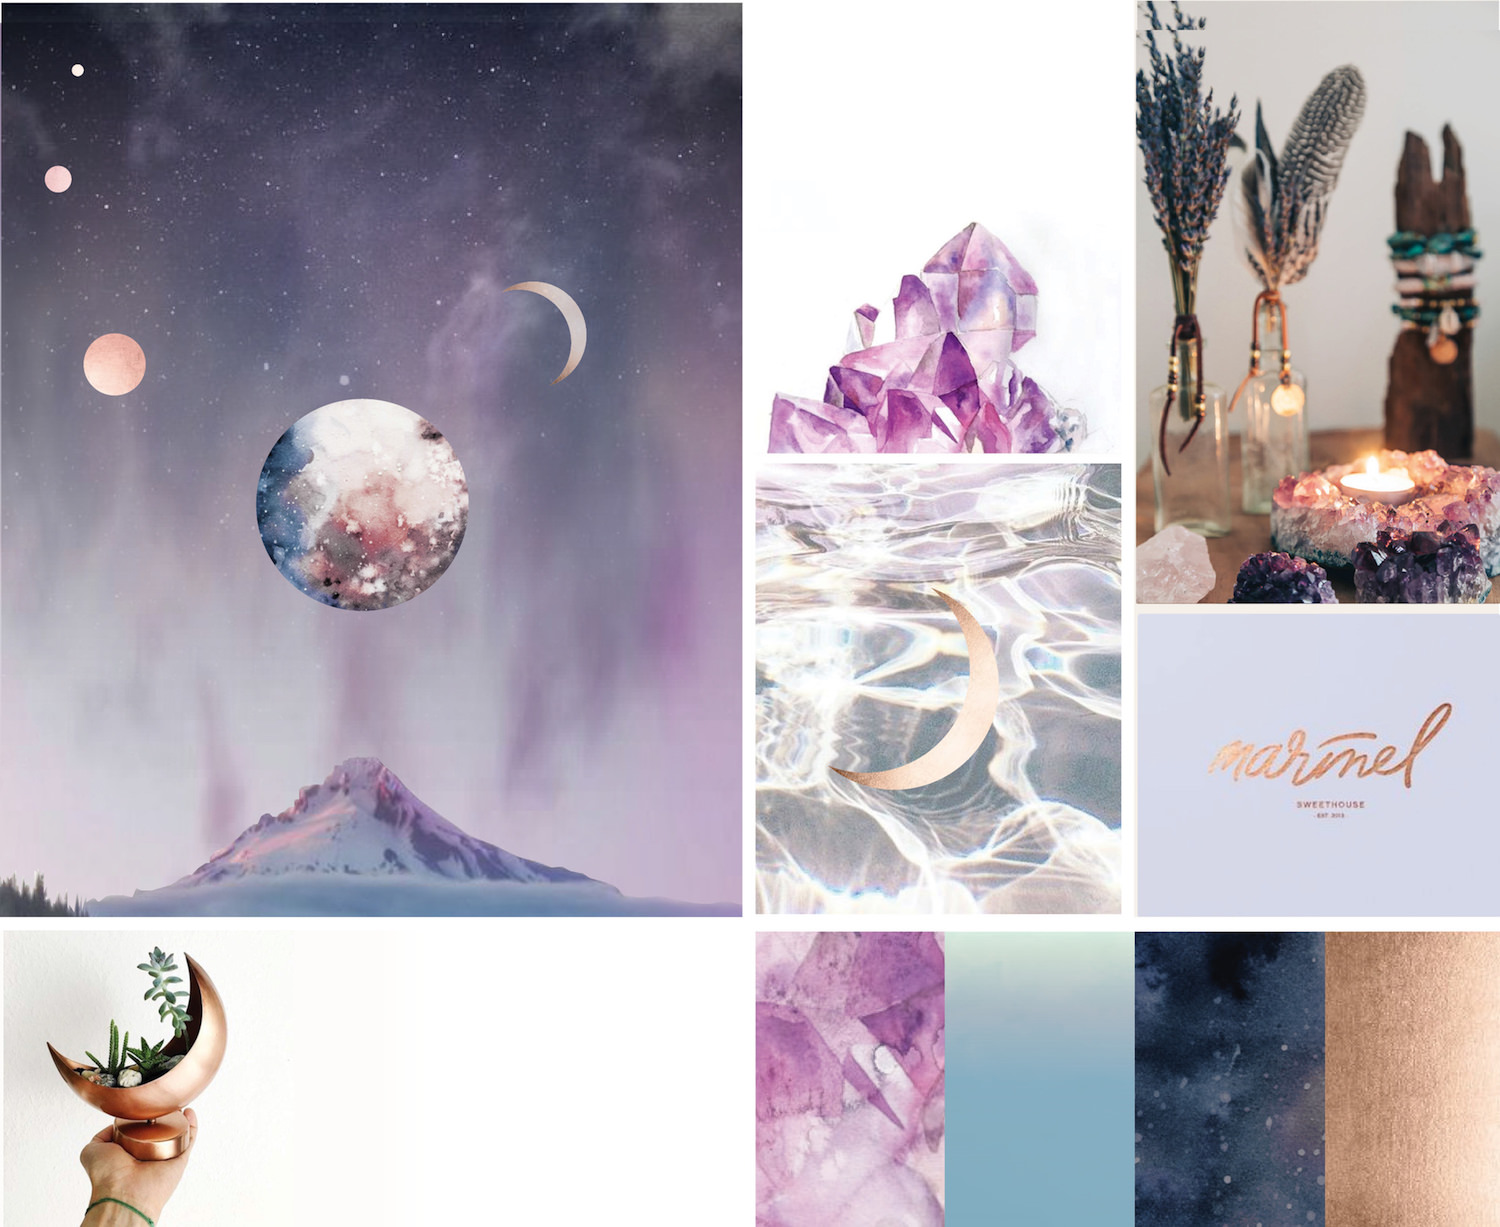 Jo-ChunYan-Graphic-Designer-Lunar-Nights-Mood-Board.jpg